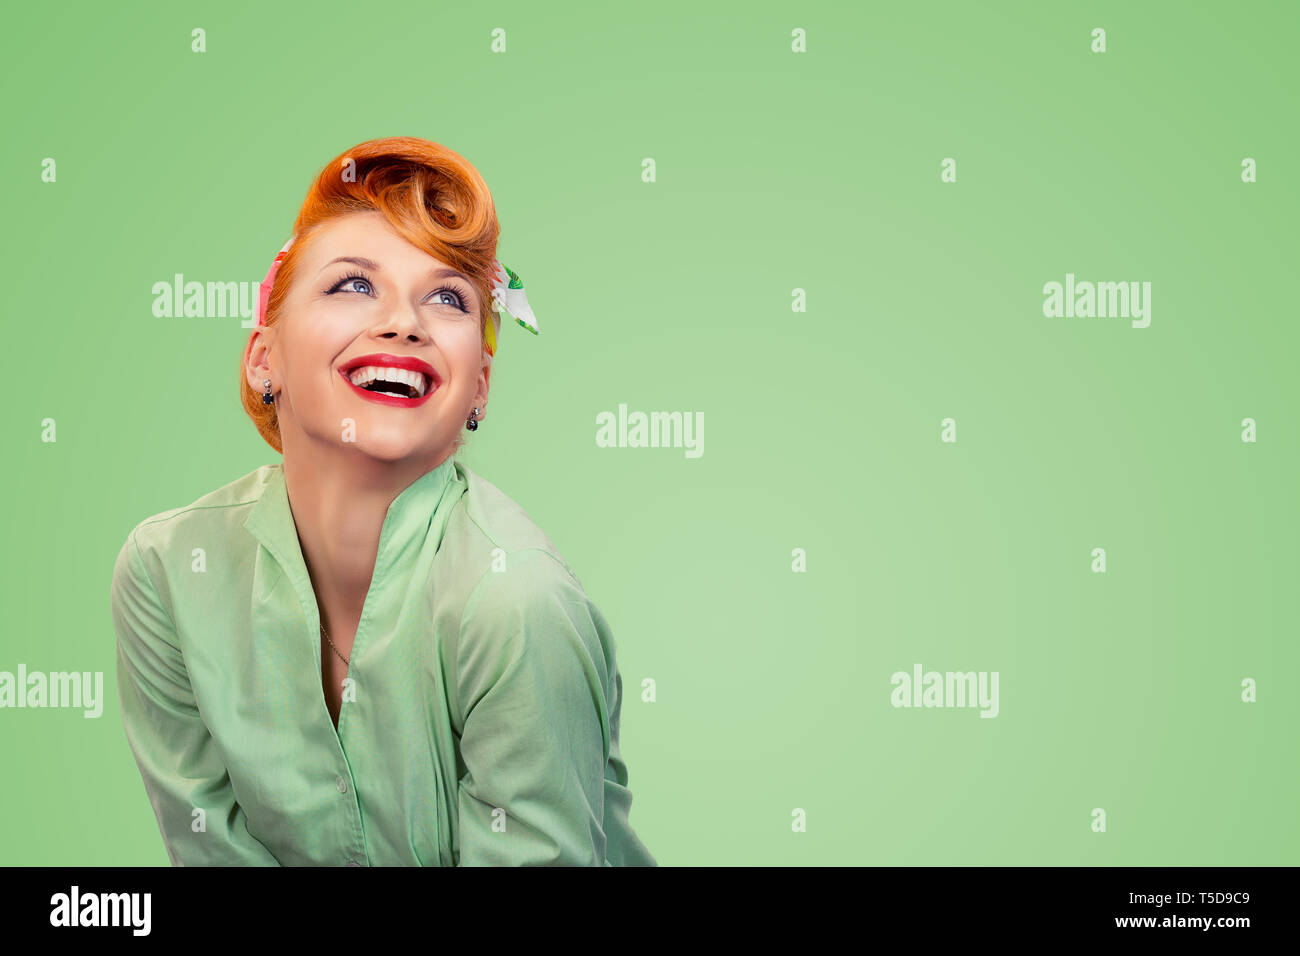 Closeup red head young excited woman pretty pinup girl green button shirt smiling laughing looking up isolated on yellow background retro vintage 50's Stock Photo